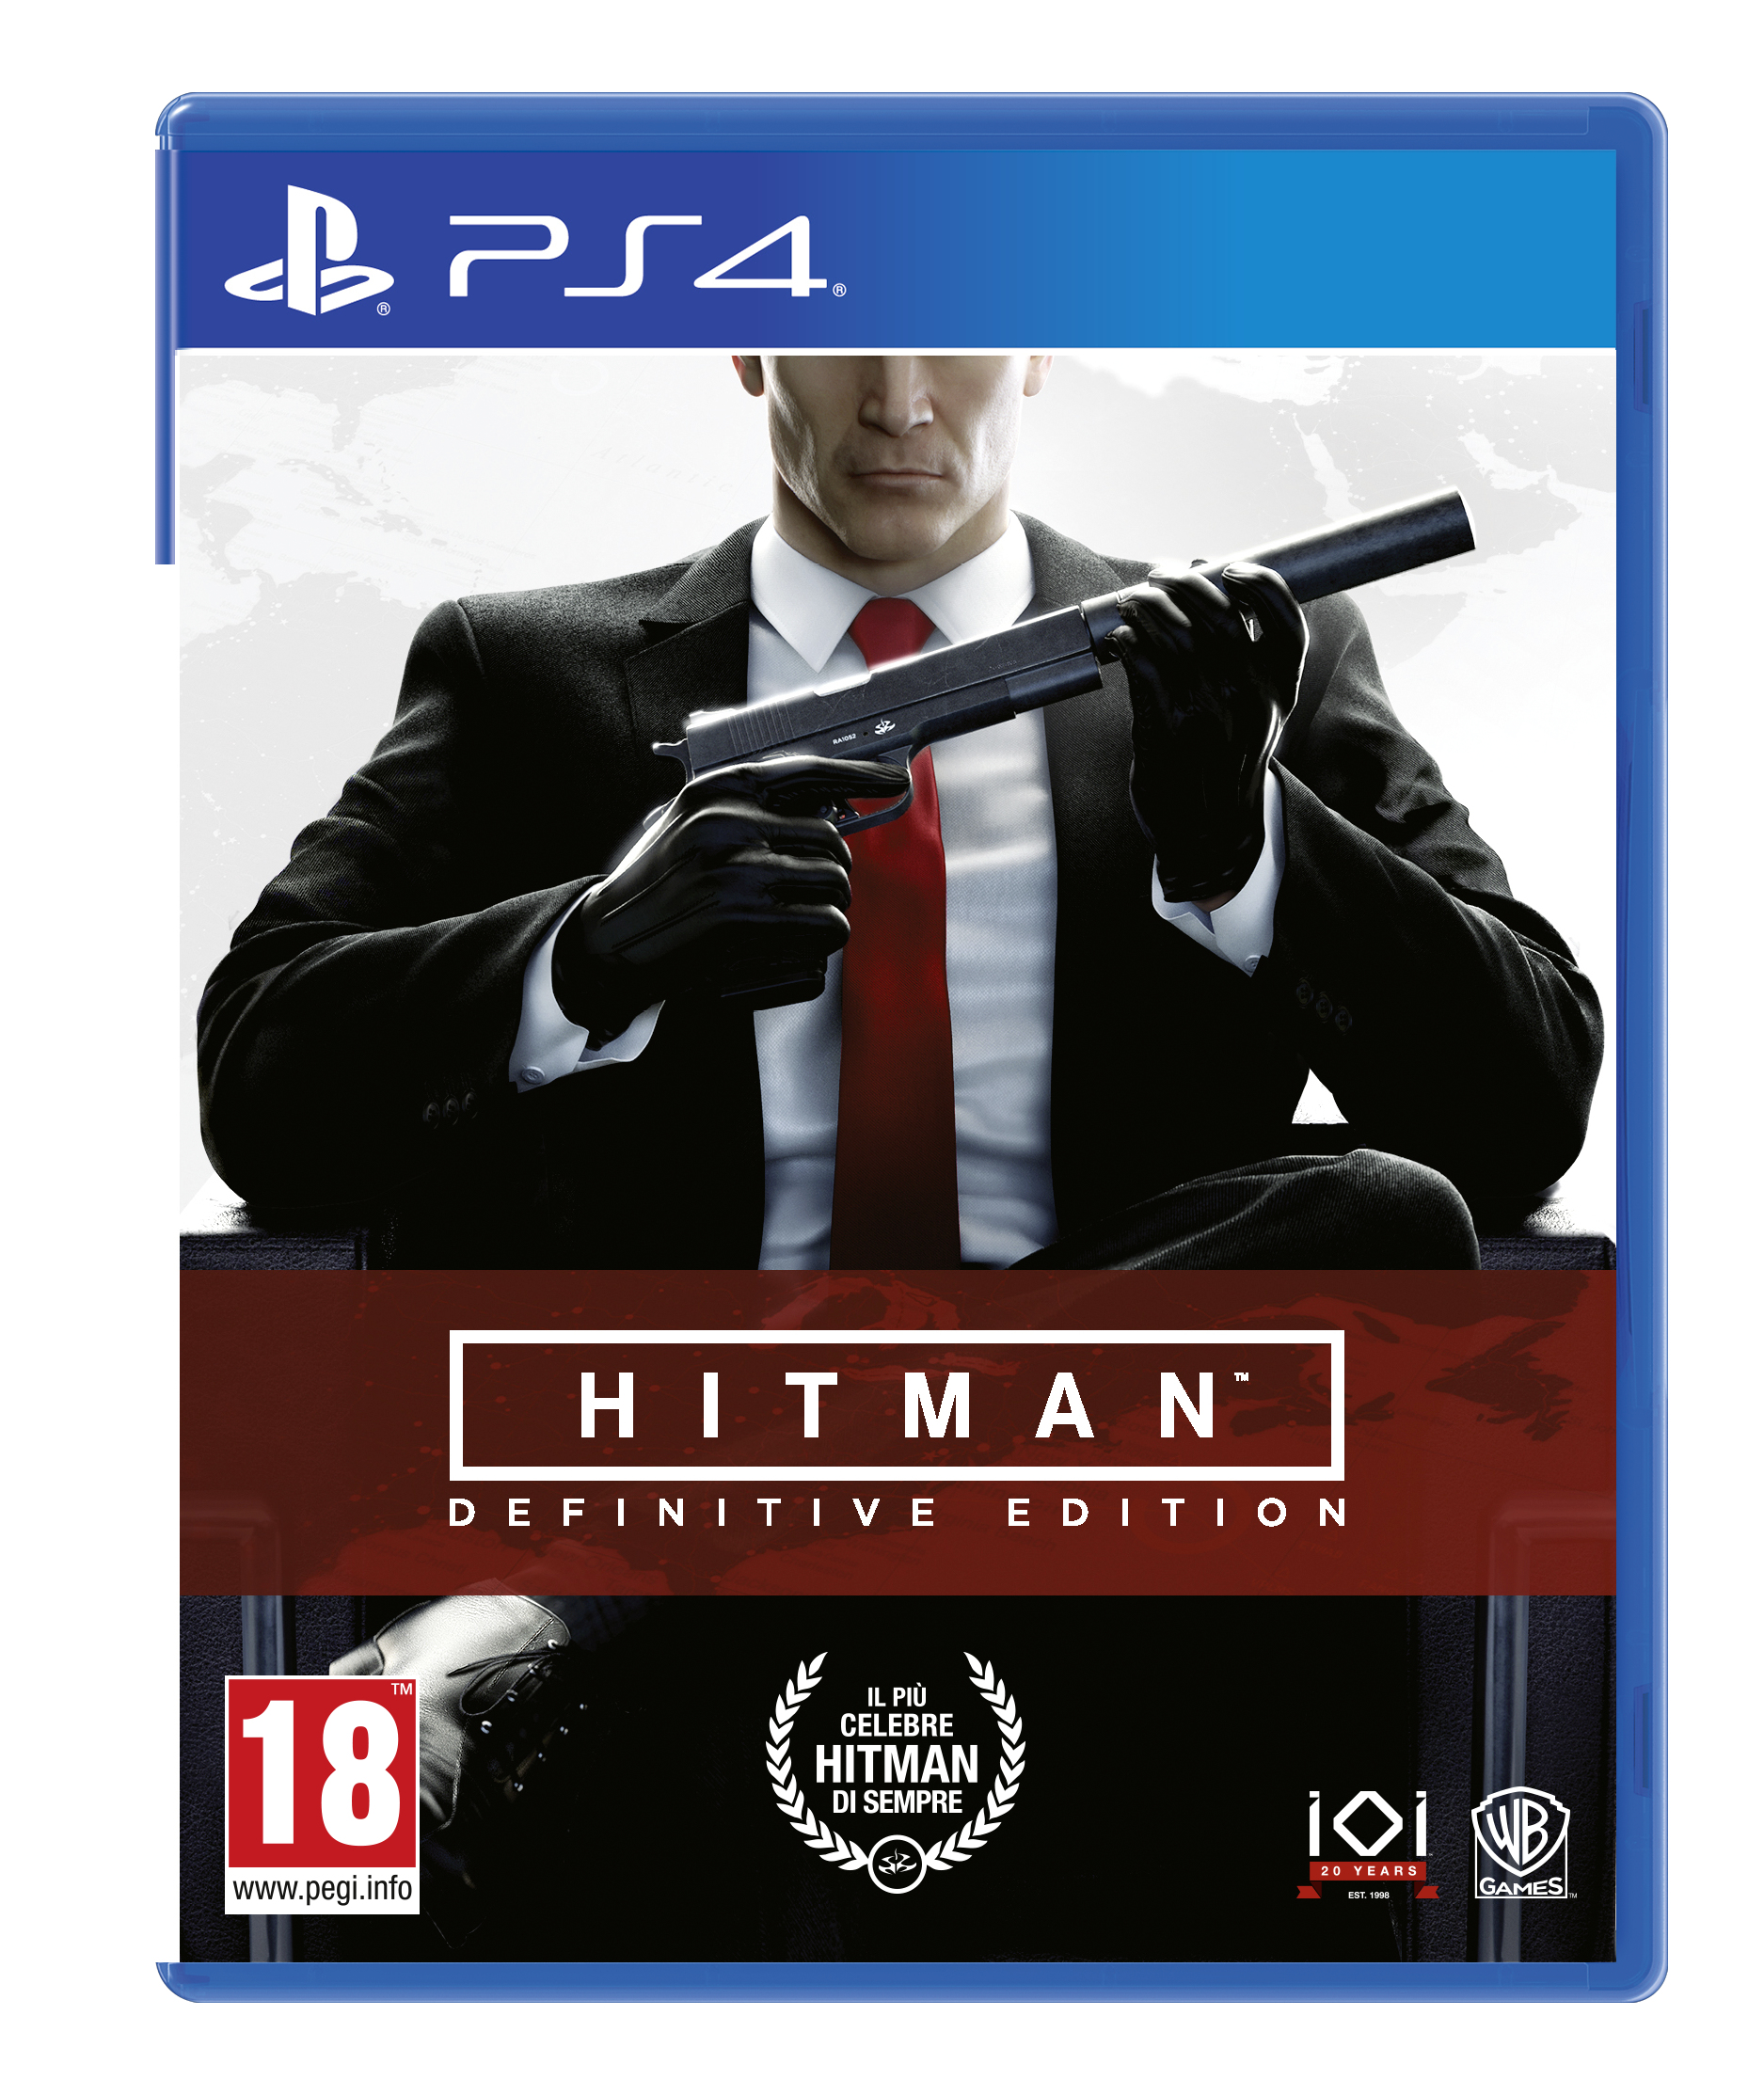 Warner Bros Game Hitman Definitive Edition Warner Bros Hitman: Definitive Edition - 1000717647